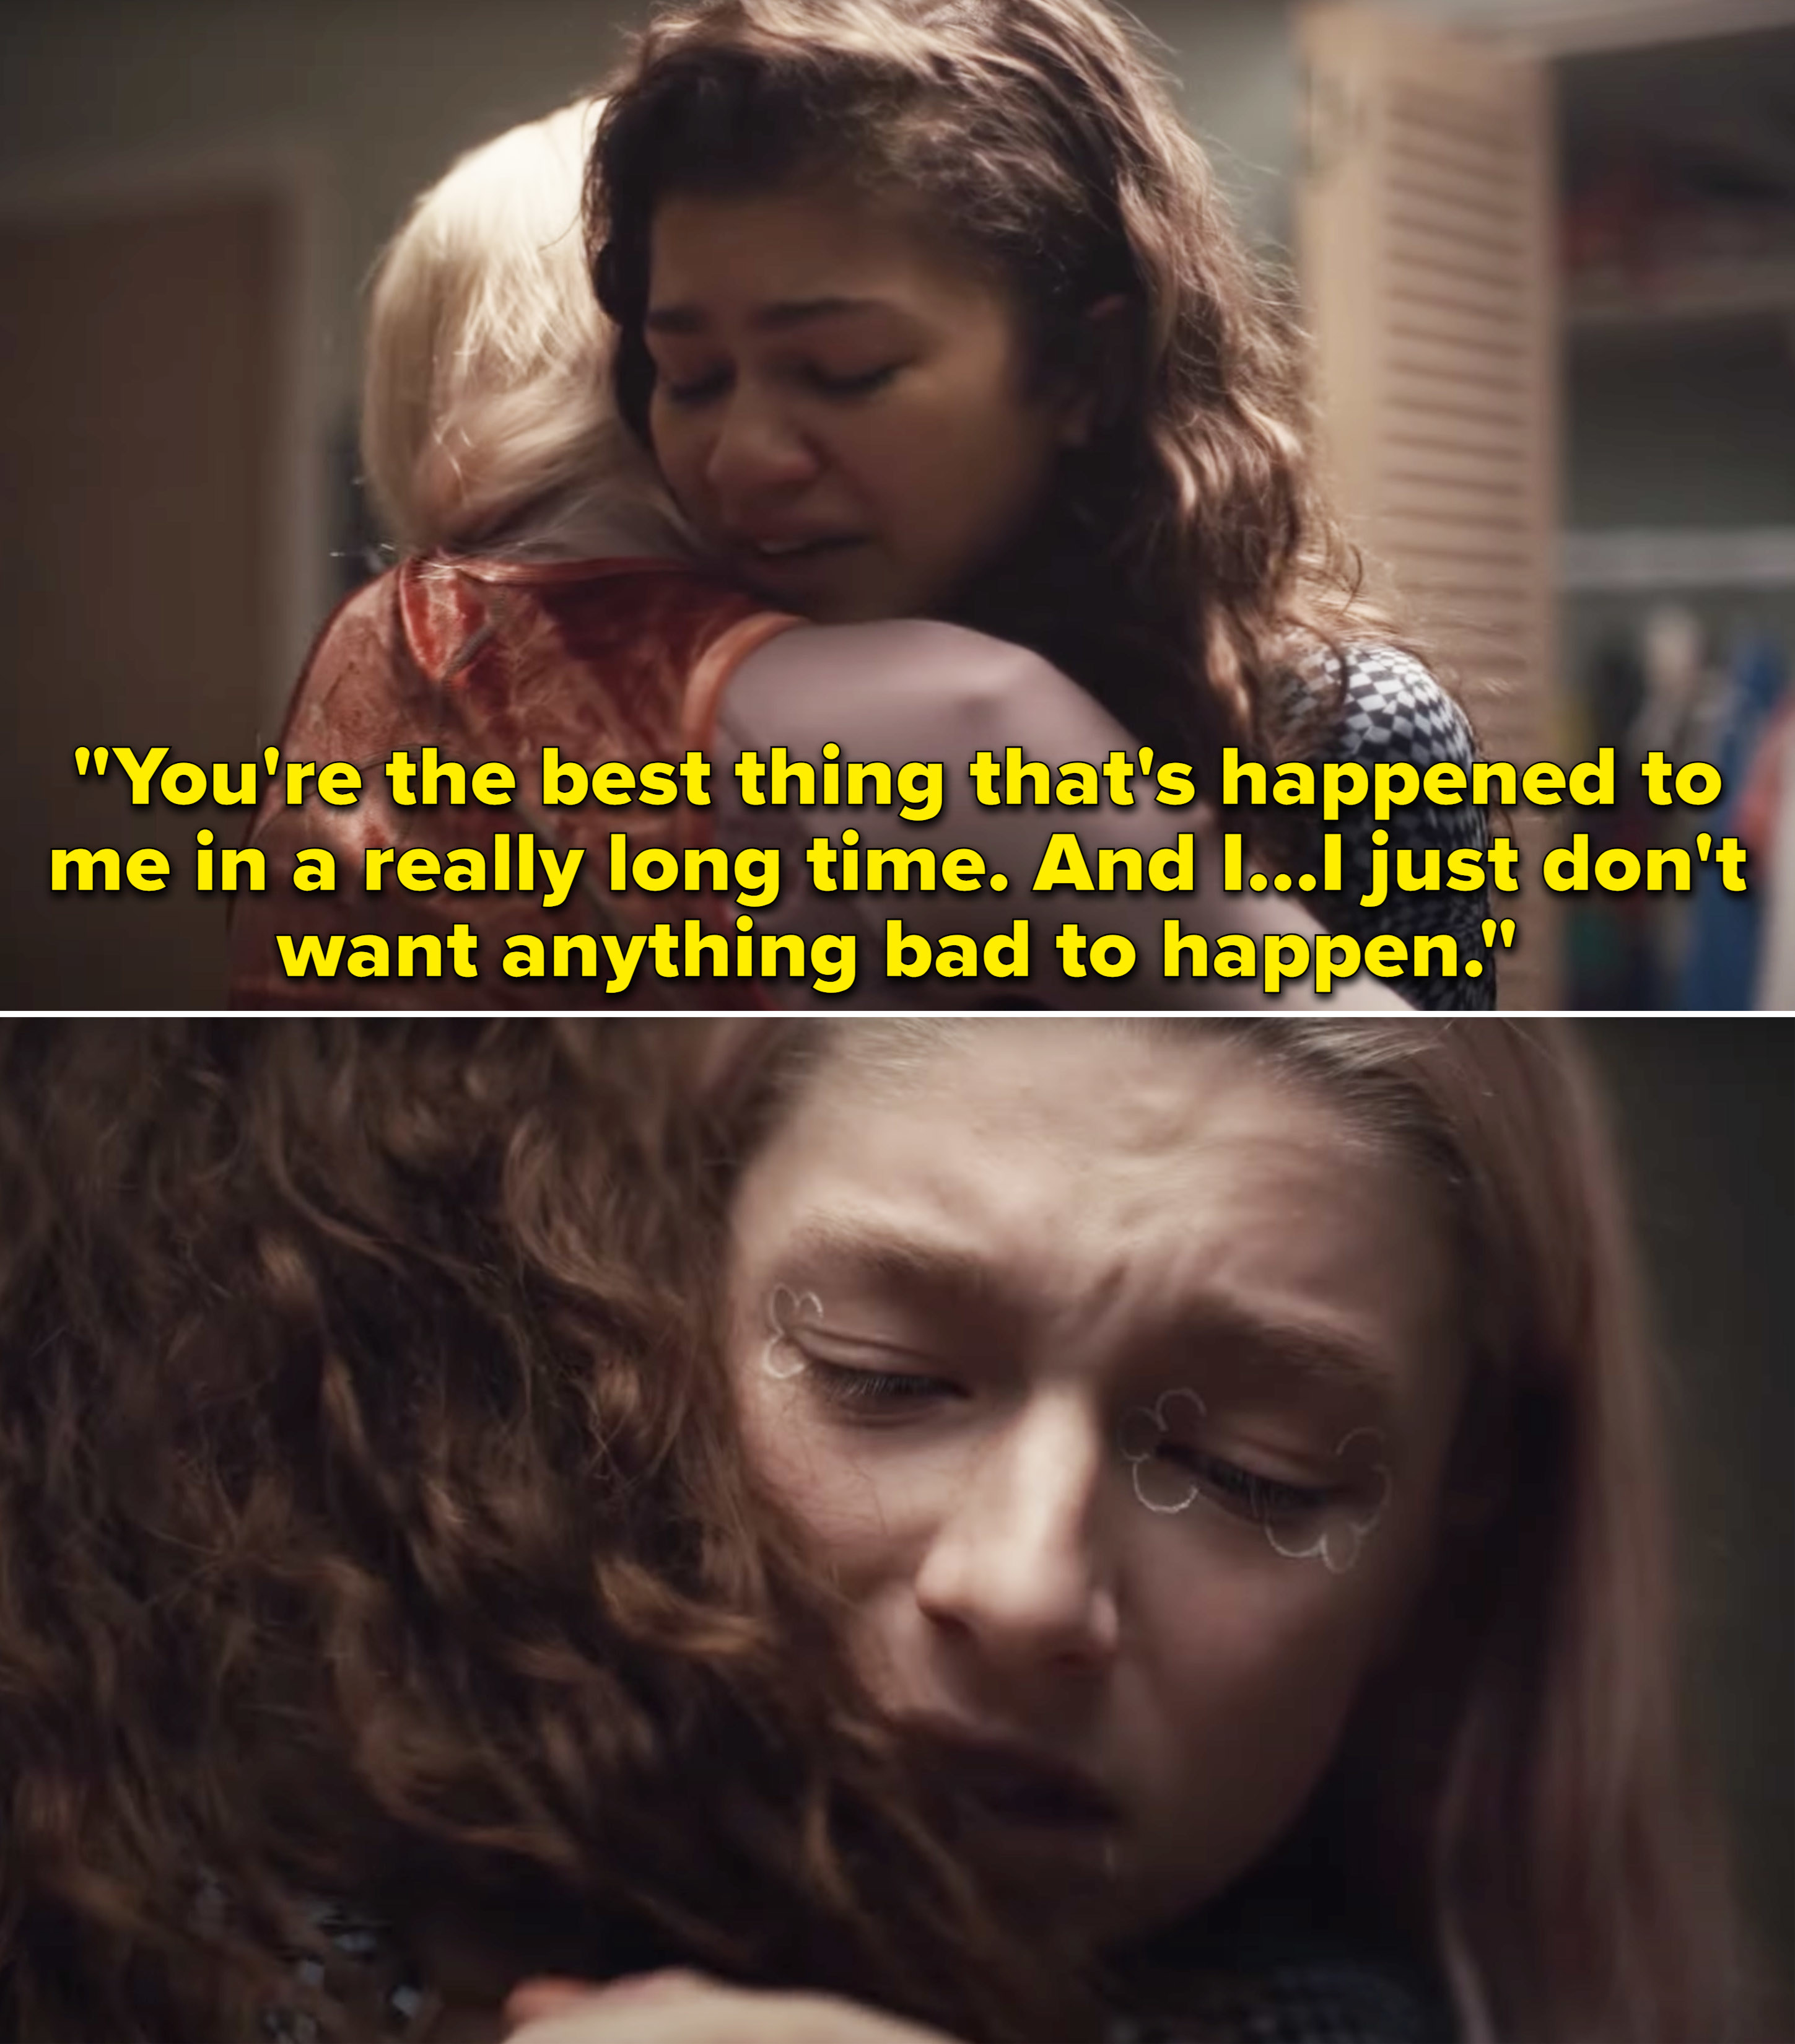 """Rue hugging Jules and saying,""""You're the best thing that's happened to me in a really long time. And I just don't want anything bad to happen"""""""